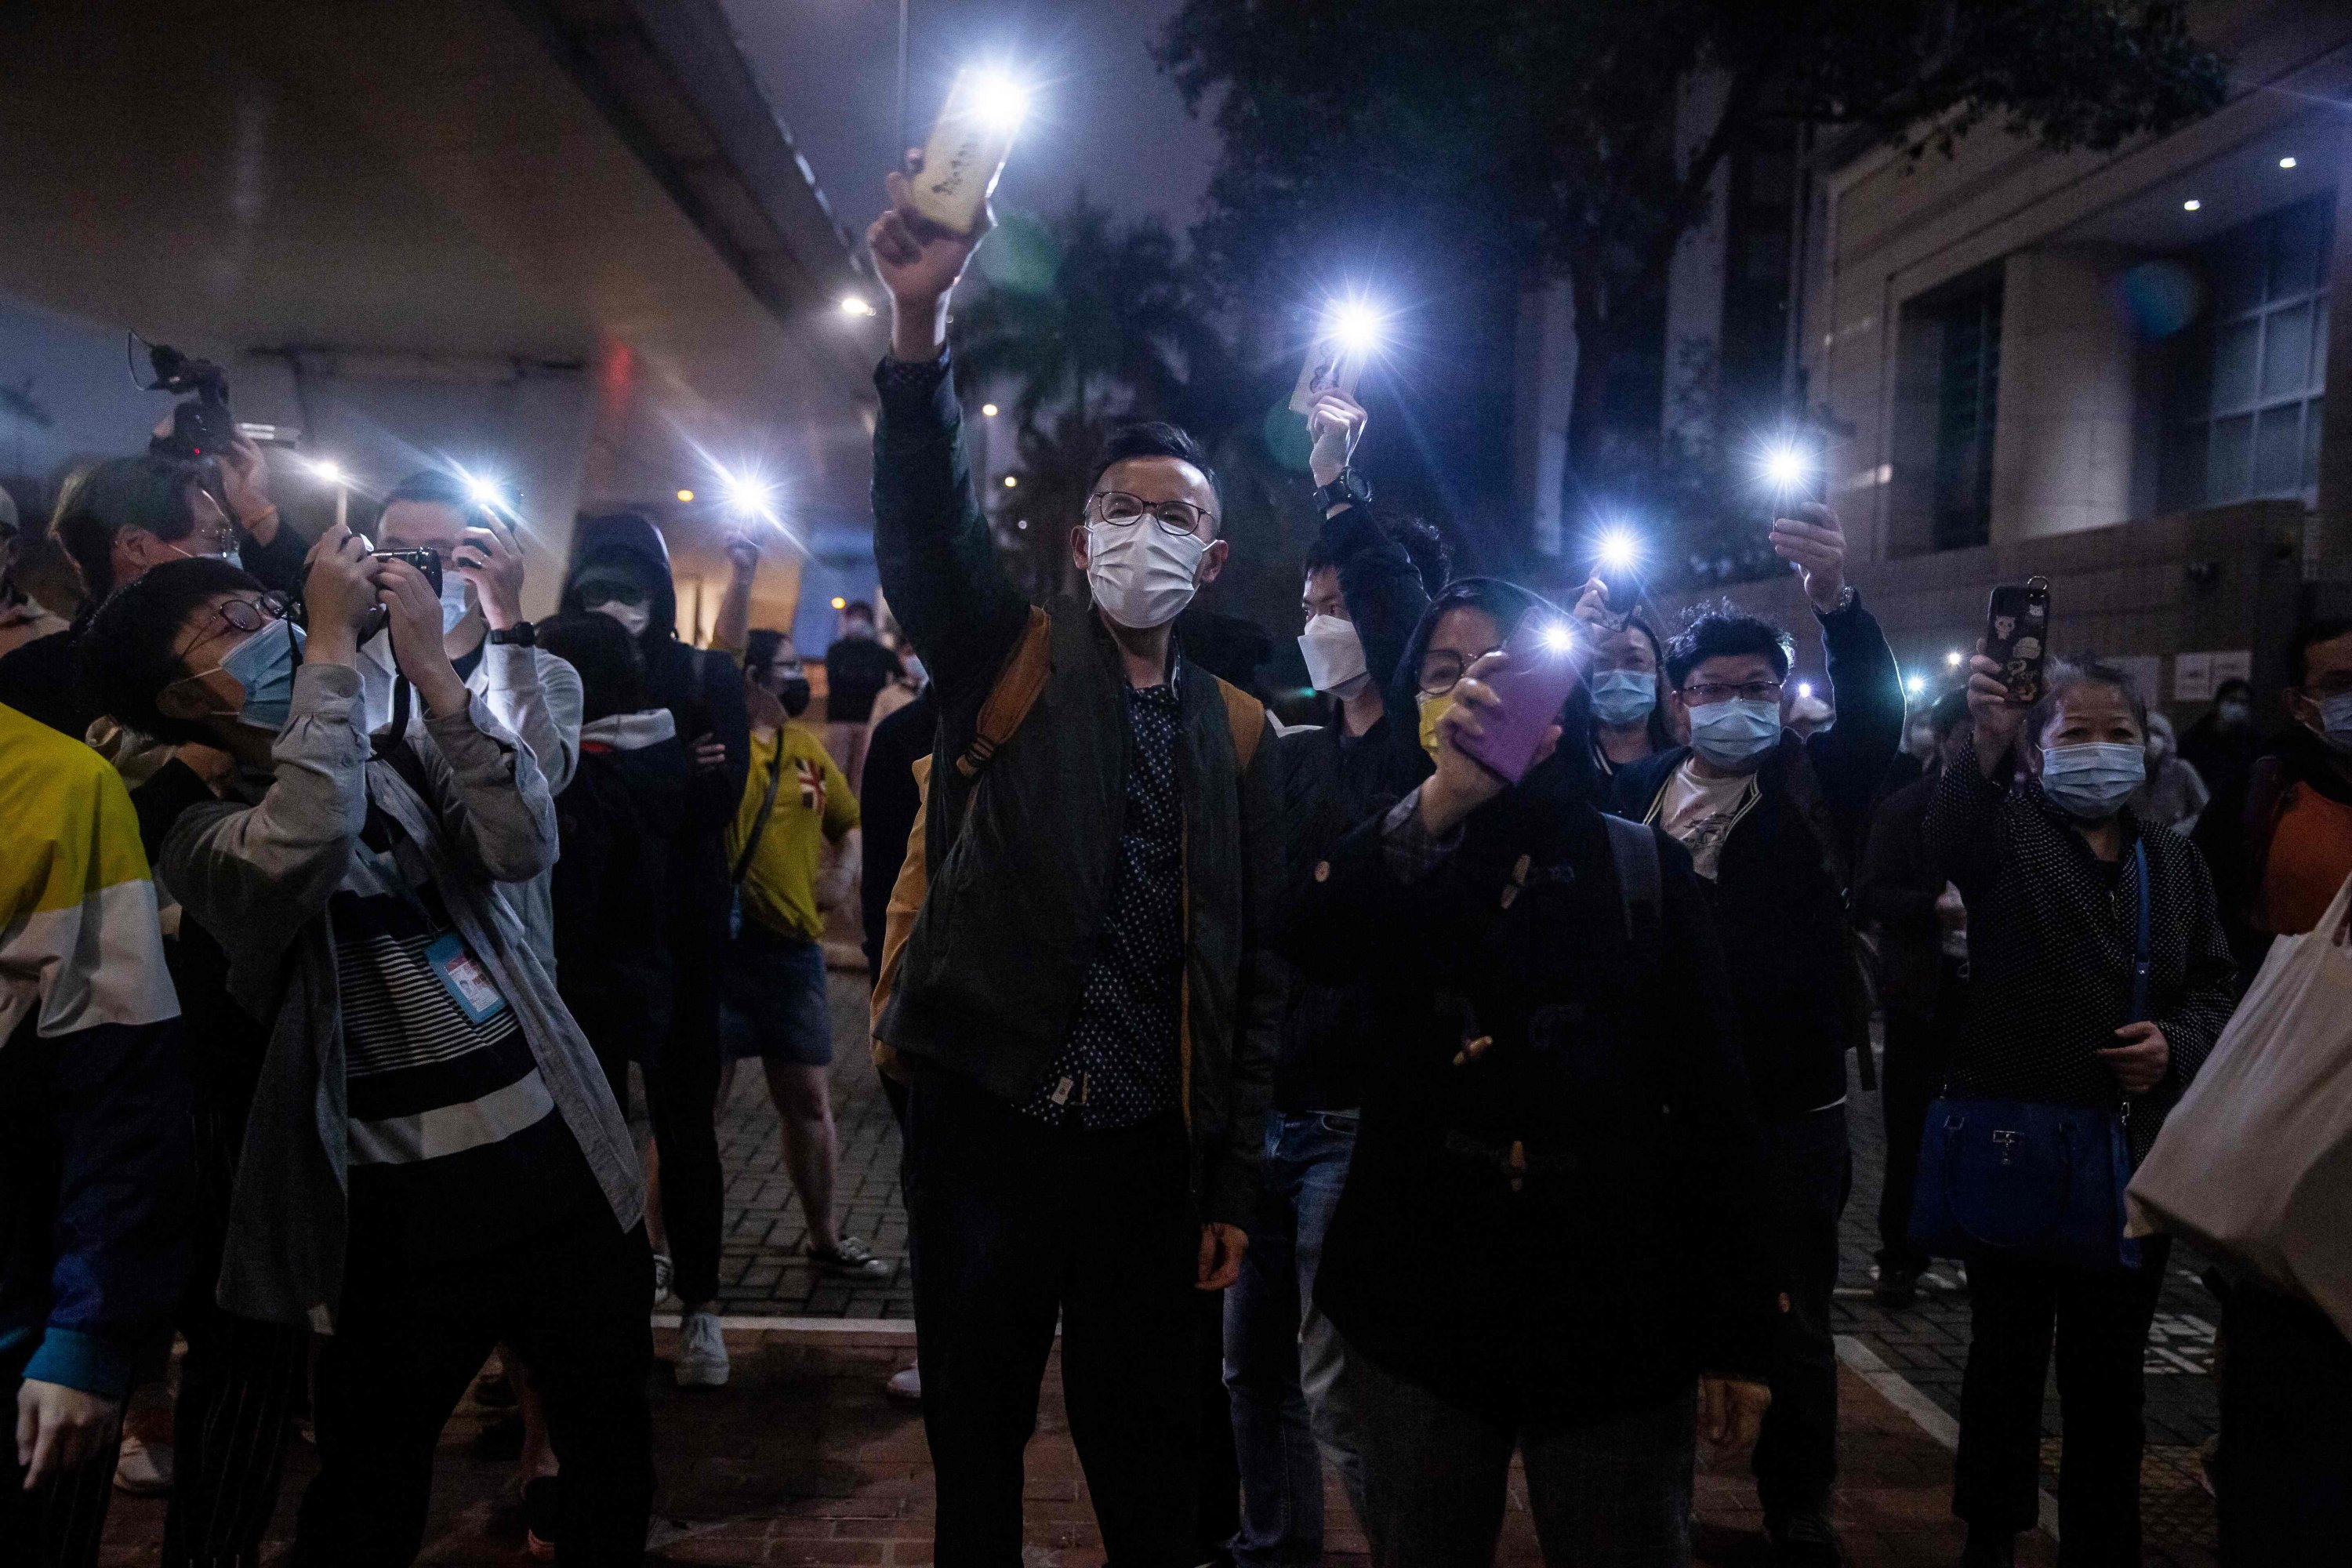 Supporters hold up their phones with the torch on after four anti-Beijing activists charged for conspiracy to commit subversion were released on bail, outside West Kowloon court in Hong Kong on March 5, 2021. (AFP Photo)